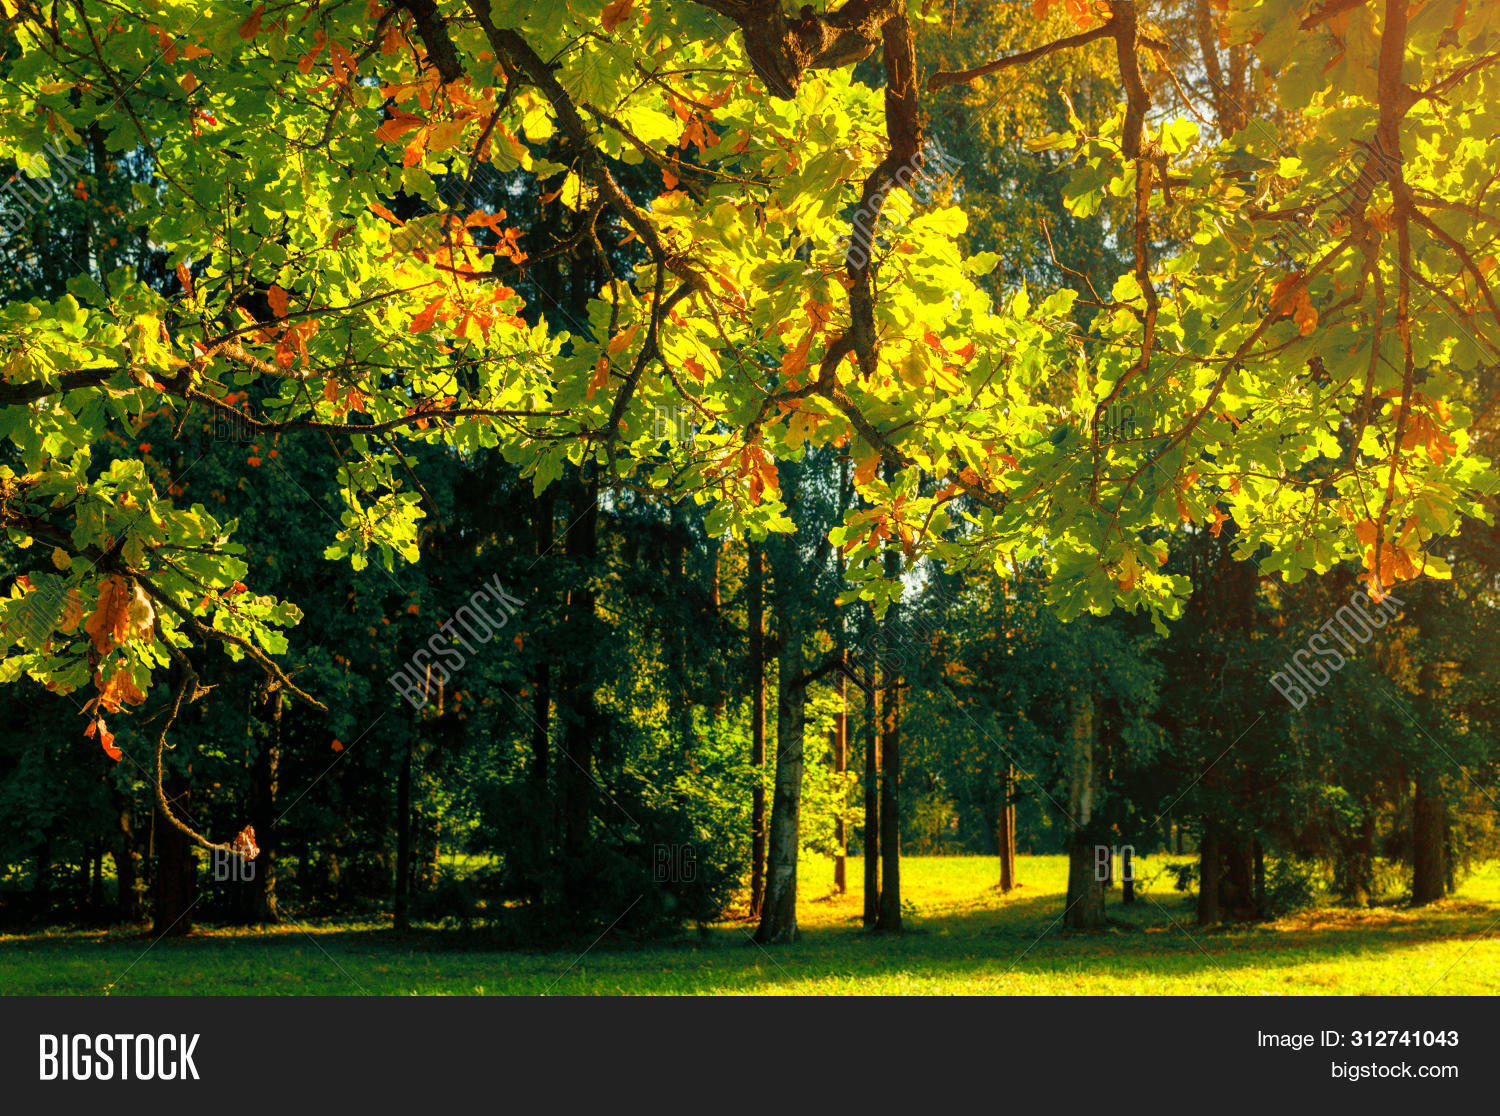 November,October,September,autumn,autumnal,background,bright,deciduous,fall,foliage,forest,gold,golden,grove,landscape,leaf,leaves,light,nature,nice,oak,orange,outdoors,park,picturesque,fall-forest,fall-landscape,fall-nature,fall-scene,fall-trees,fall-background,fall-leaves,fall-park,fall-outdoors,fall-leaf,fall-alley,fall-sunset,season,sprawling,sun,sunbeam,sunlight,sunny,sunrise,sunset,tree,view,weather,yellow,yellowed